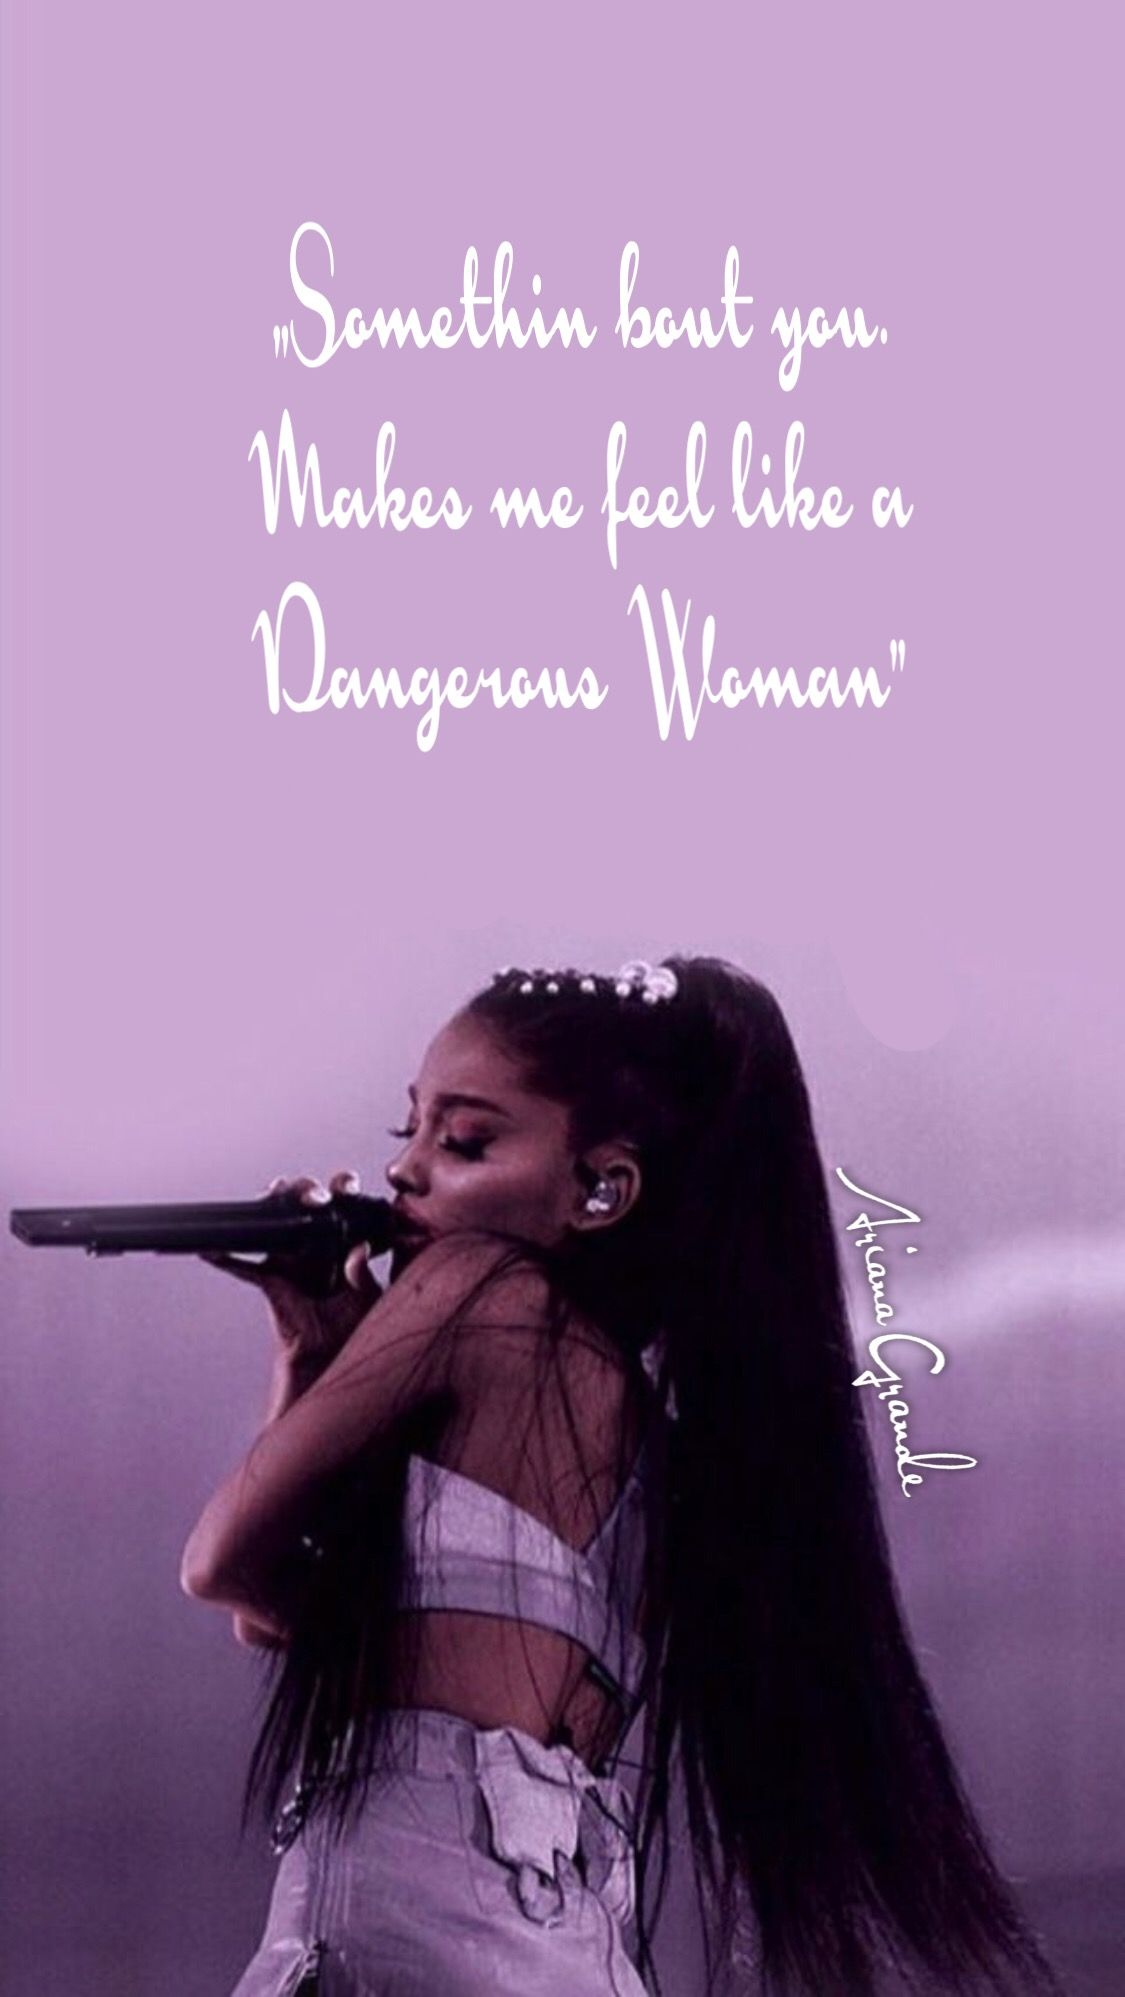 Ariana Grande Dangerous Woman Wallpaper (With images